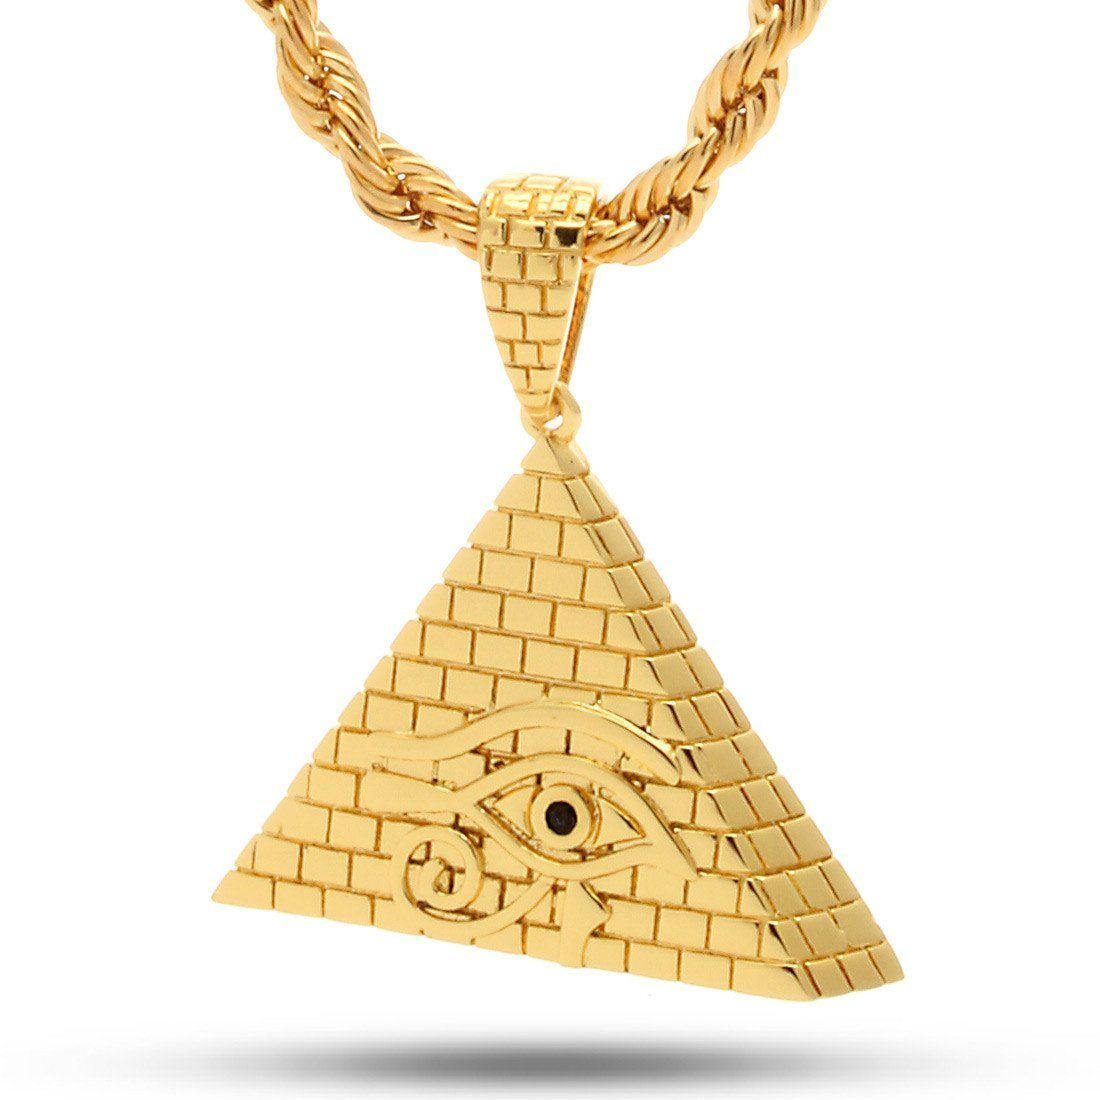 The 14K Gold All Seeing Eye Pyramid Necklace